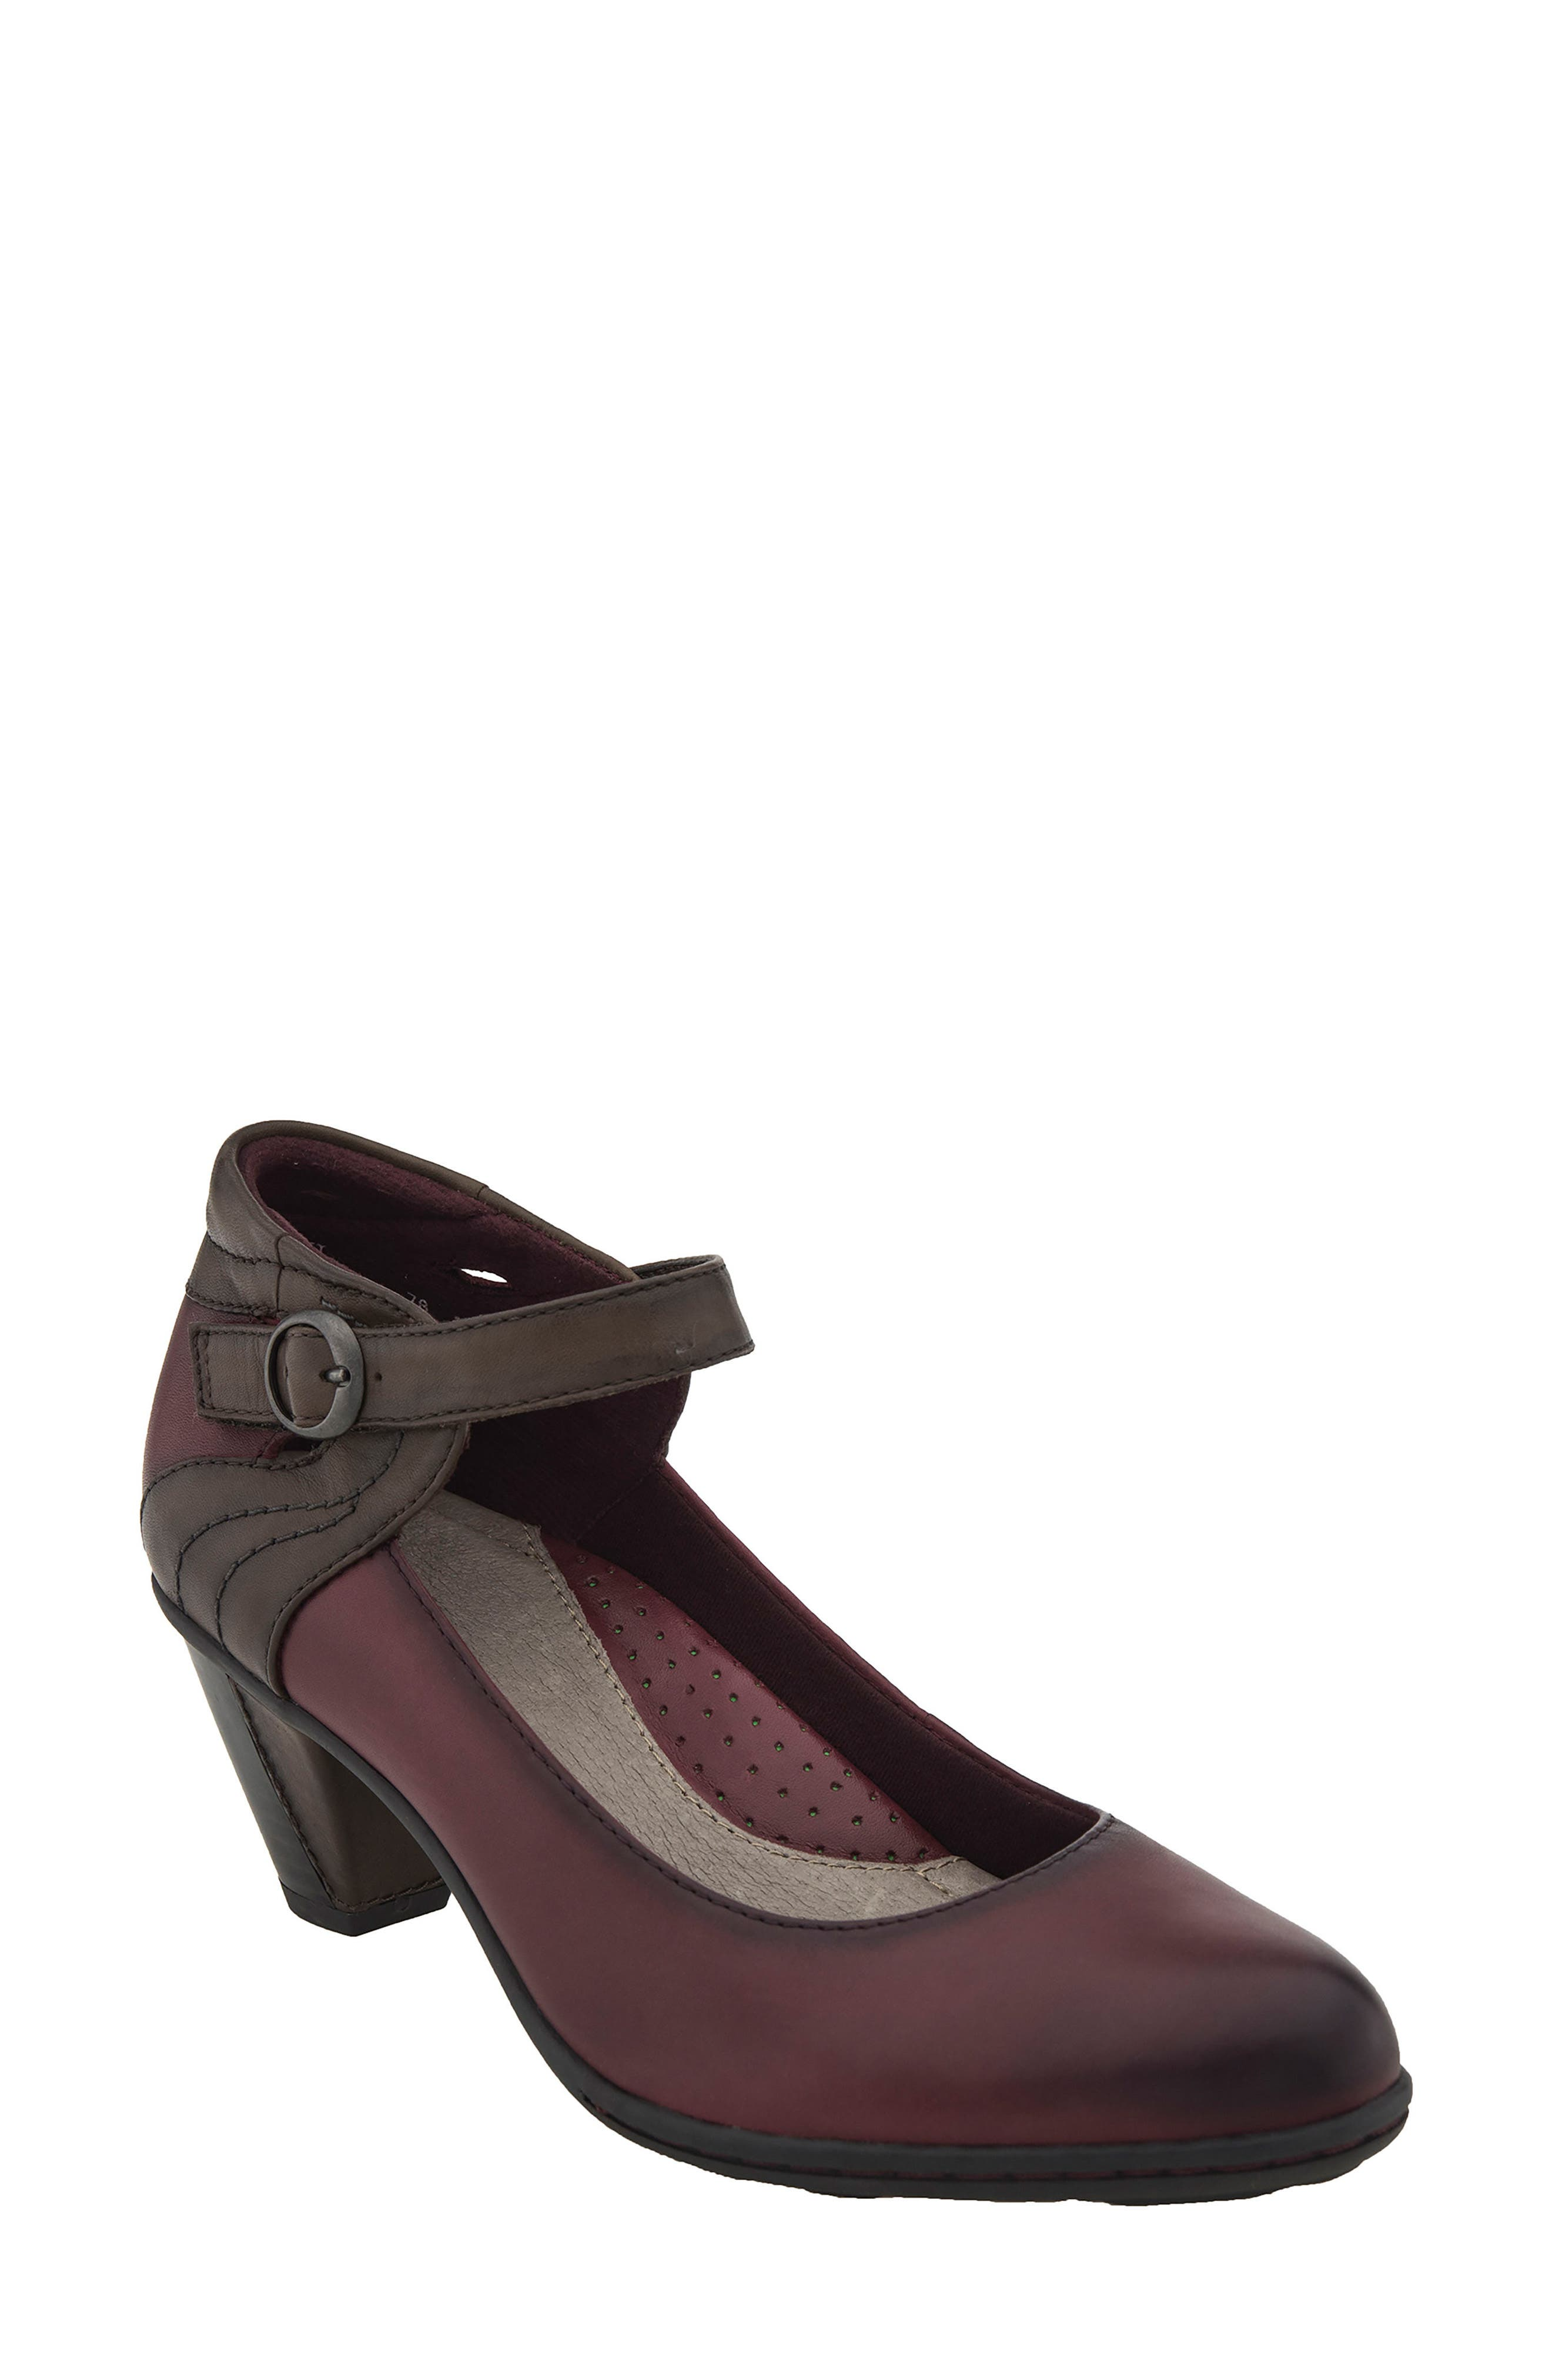 Alternate Image 1 Selected - Earth® Garnet Ankle Strap Pump (Women)